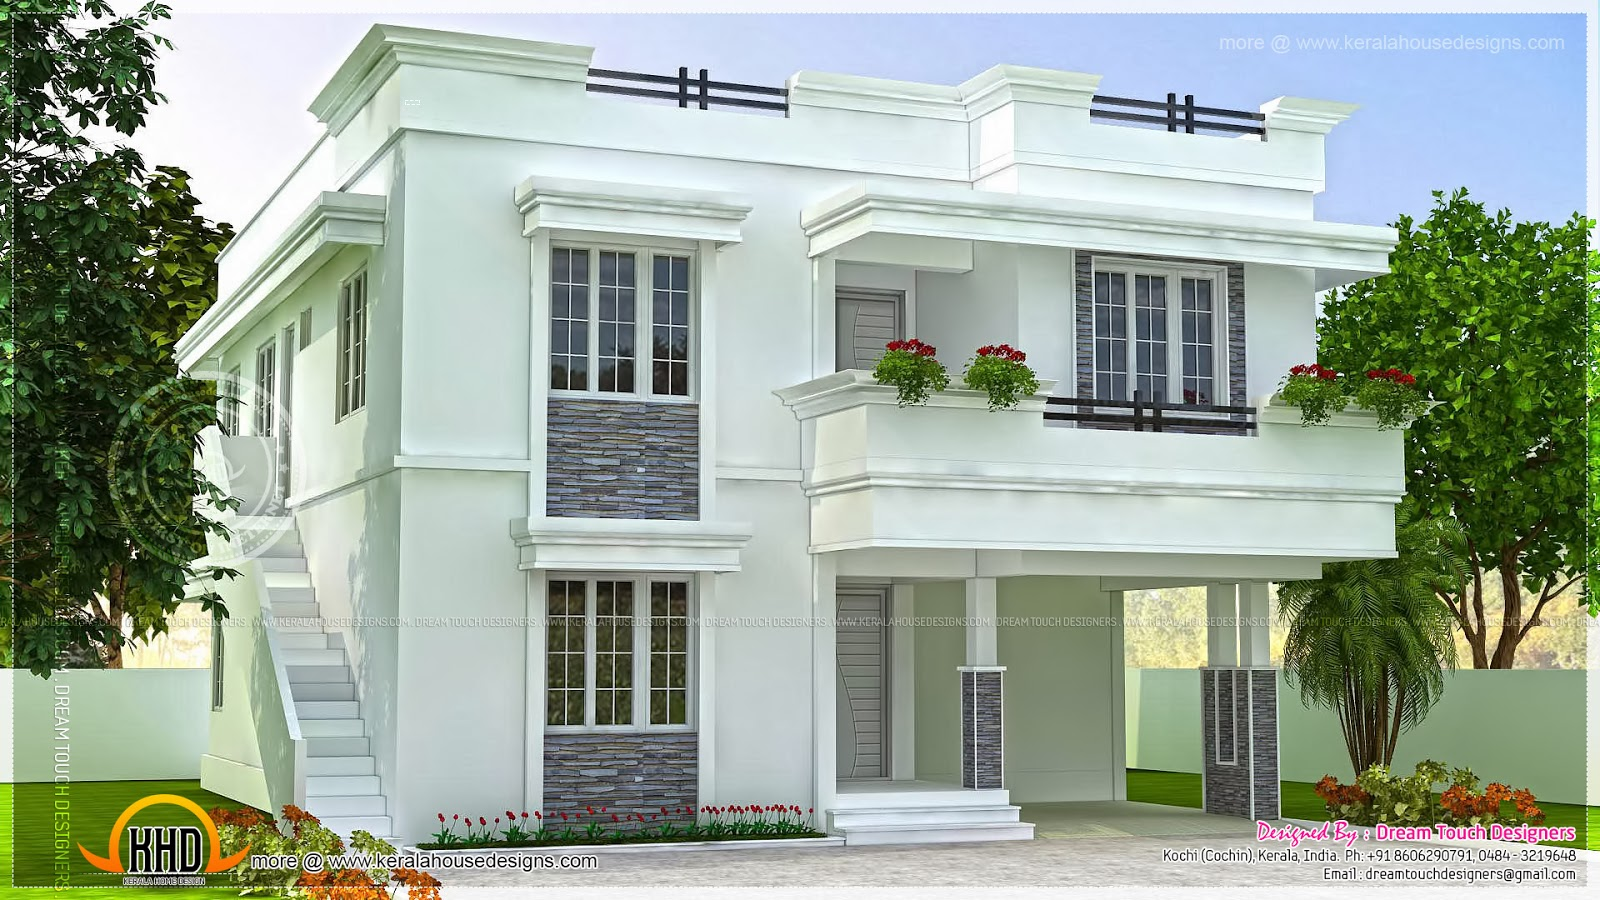 Indian Home Design: Kerala Home Design And Floor Plans